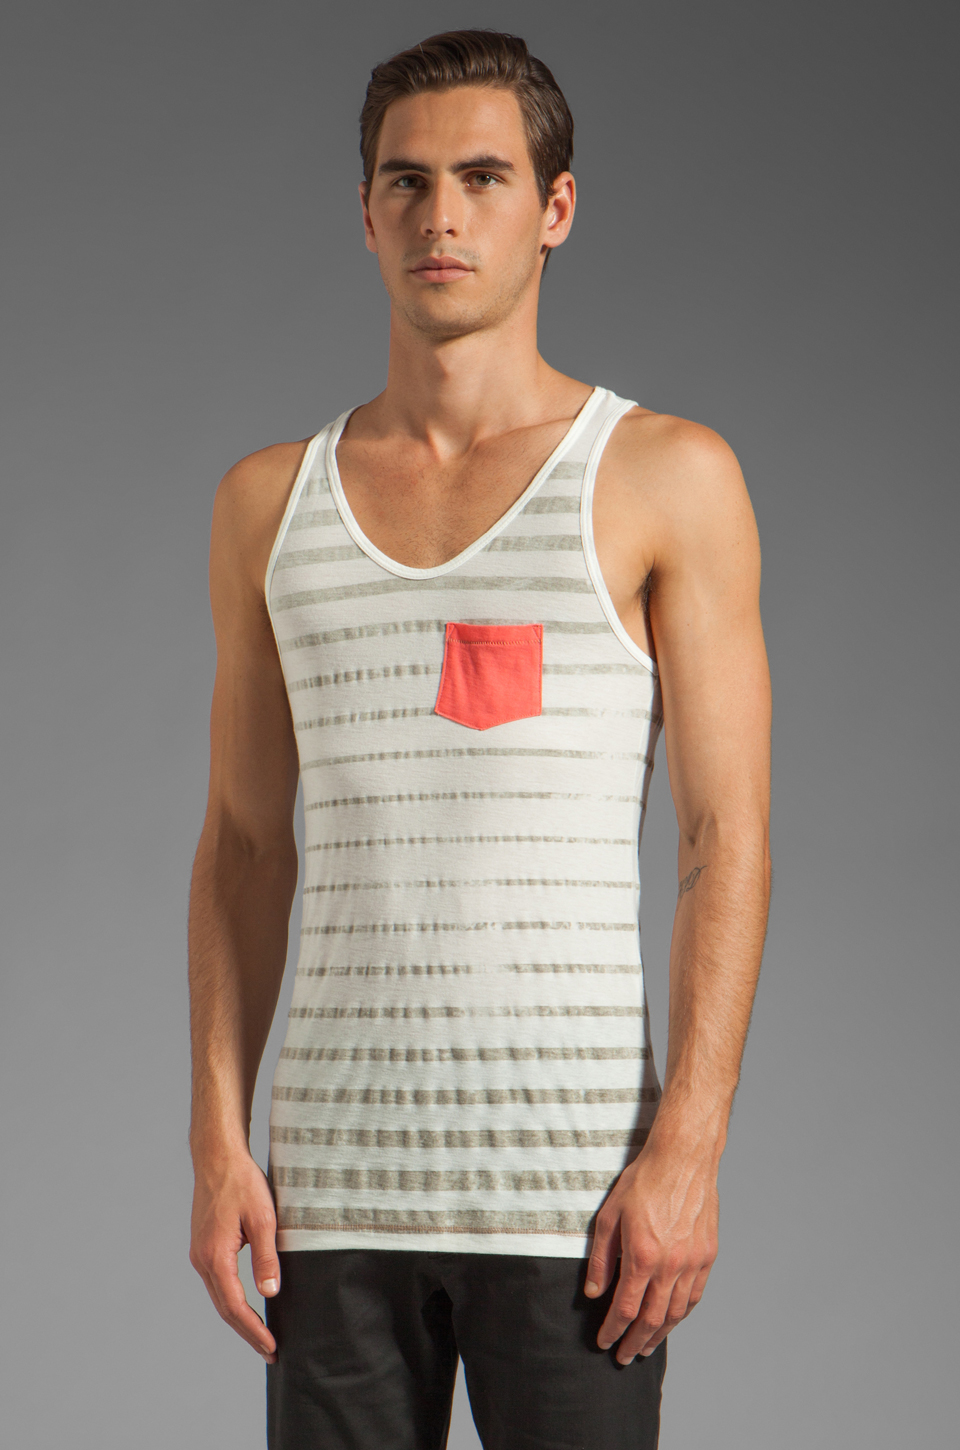 Cohesive & co. Cohesive & co Malvern Tank Top in Camel